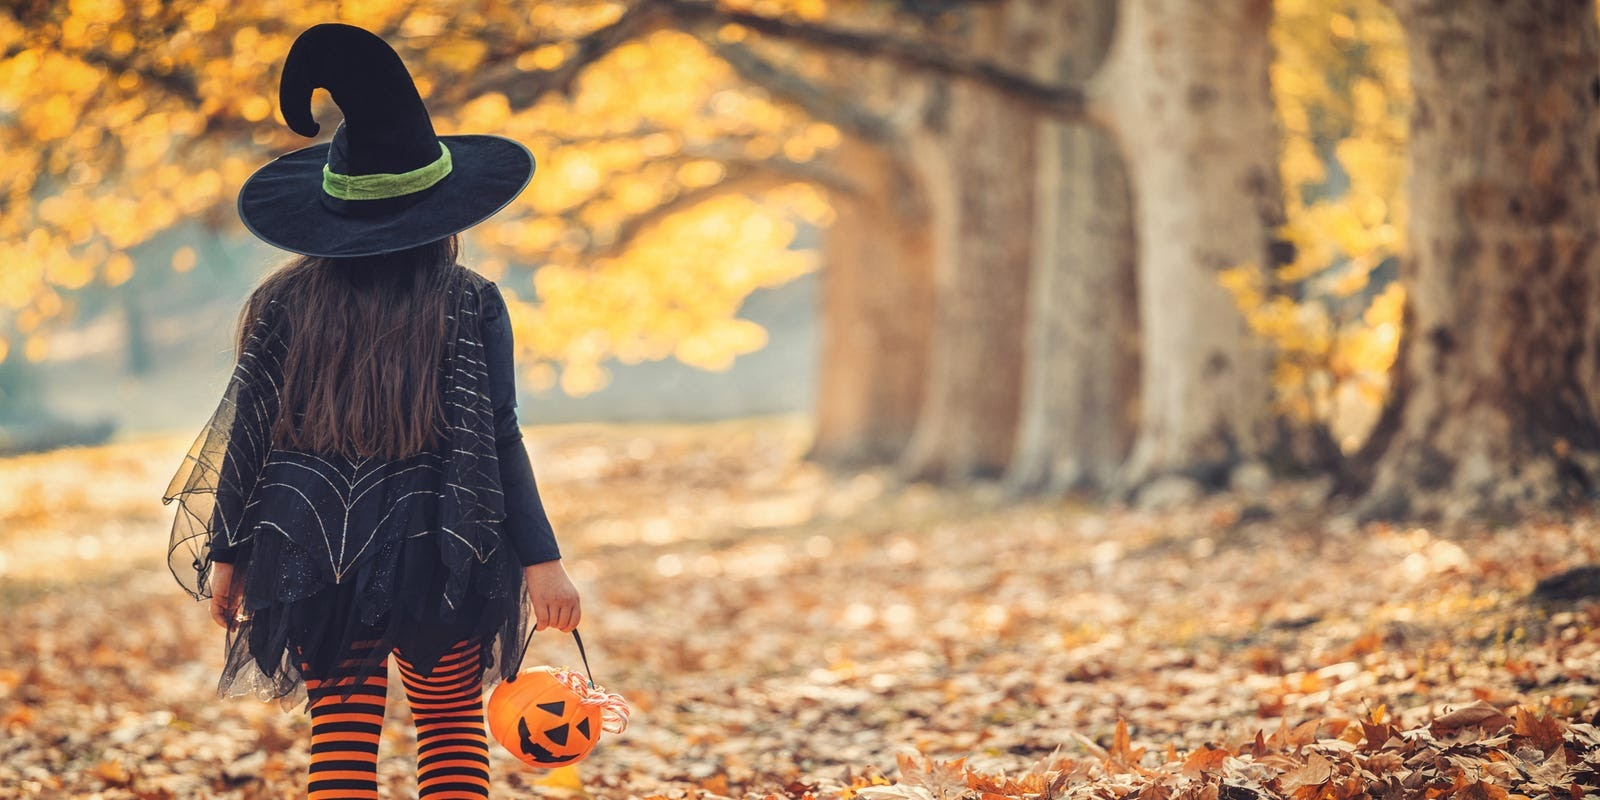 Trick-or-treating has become the most popular activity to participate in on Halloween since the early 20th century in the United States. Image courtesy of usatoday.com.